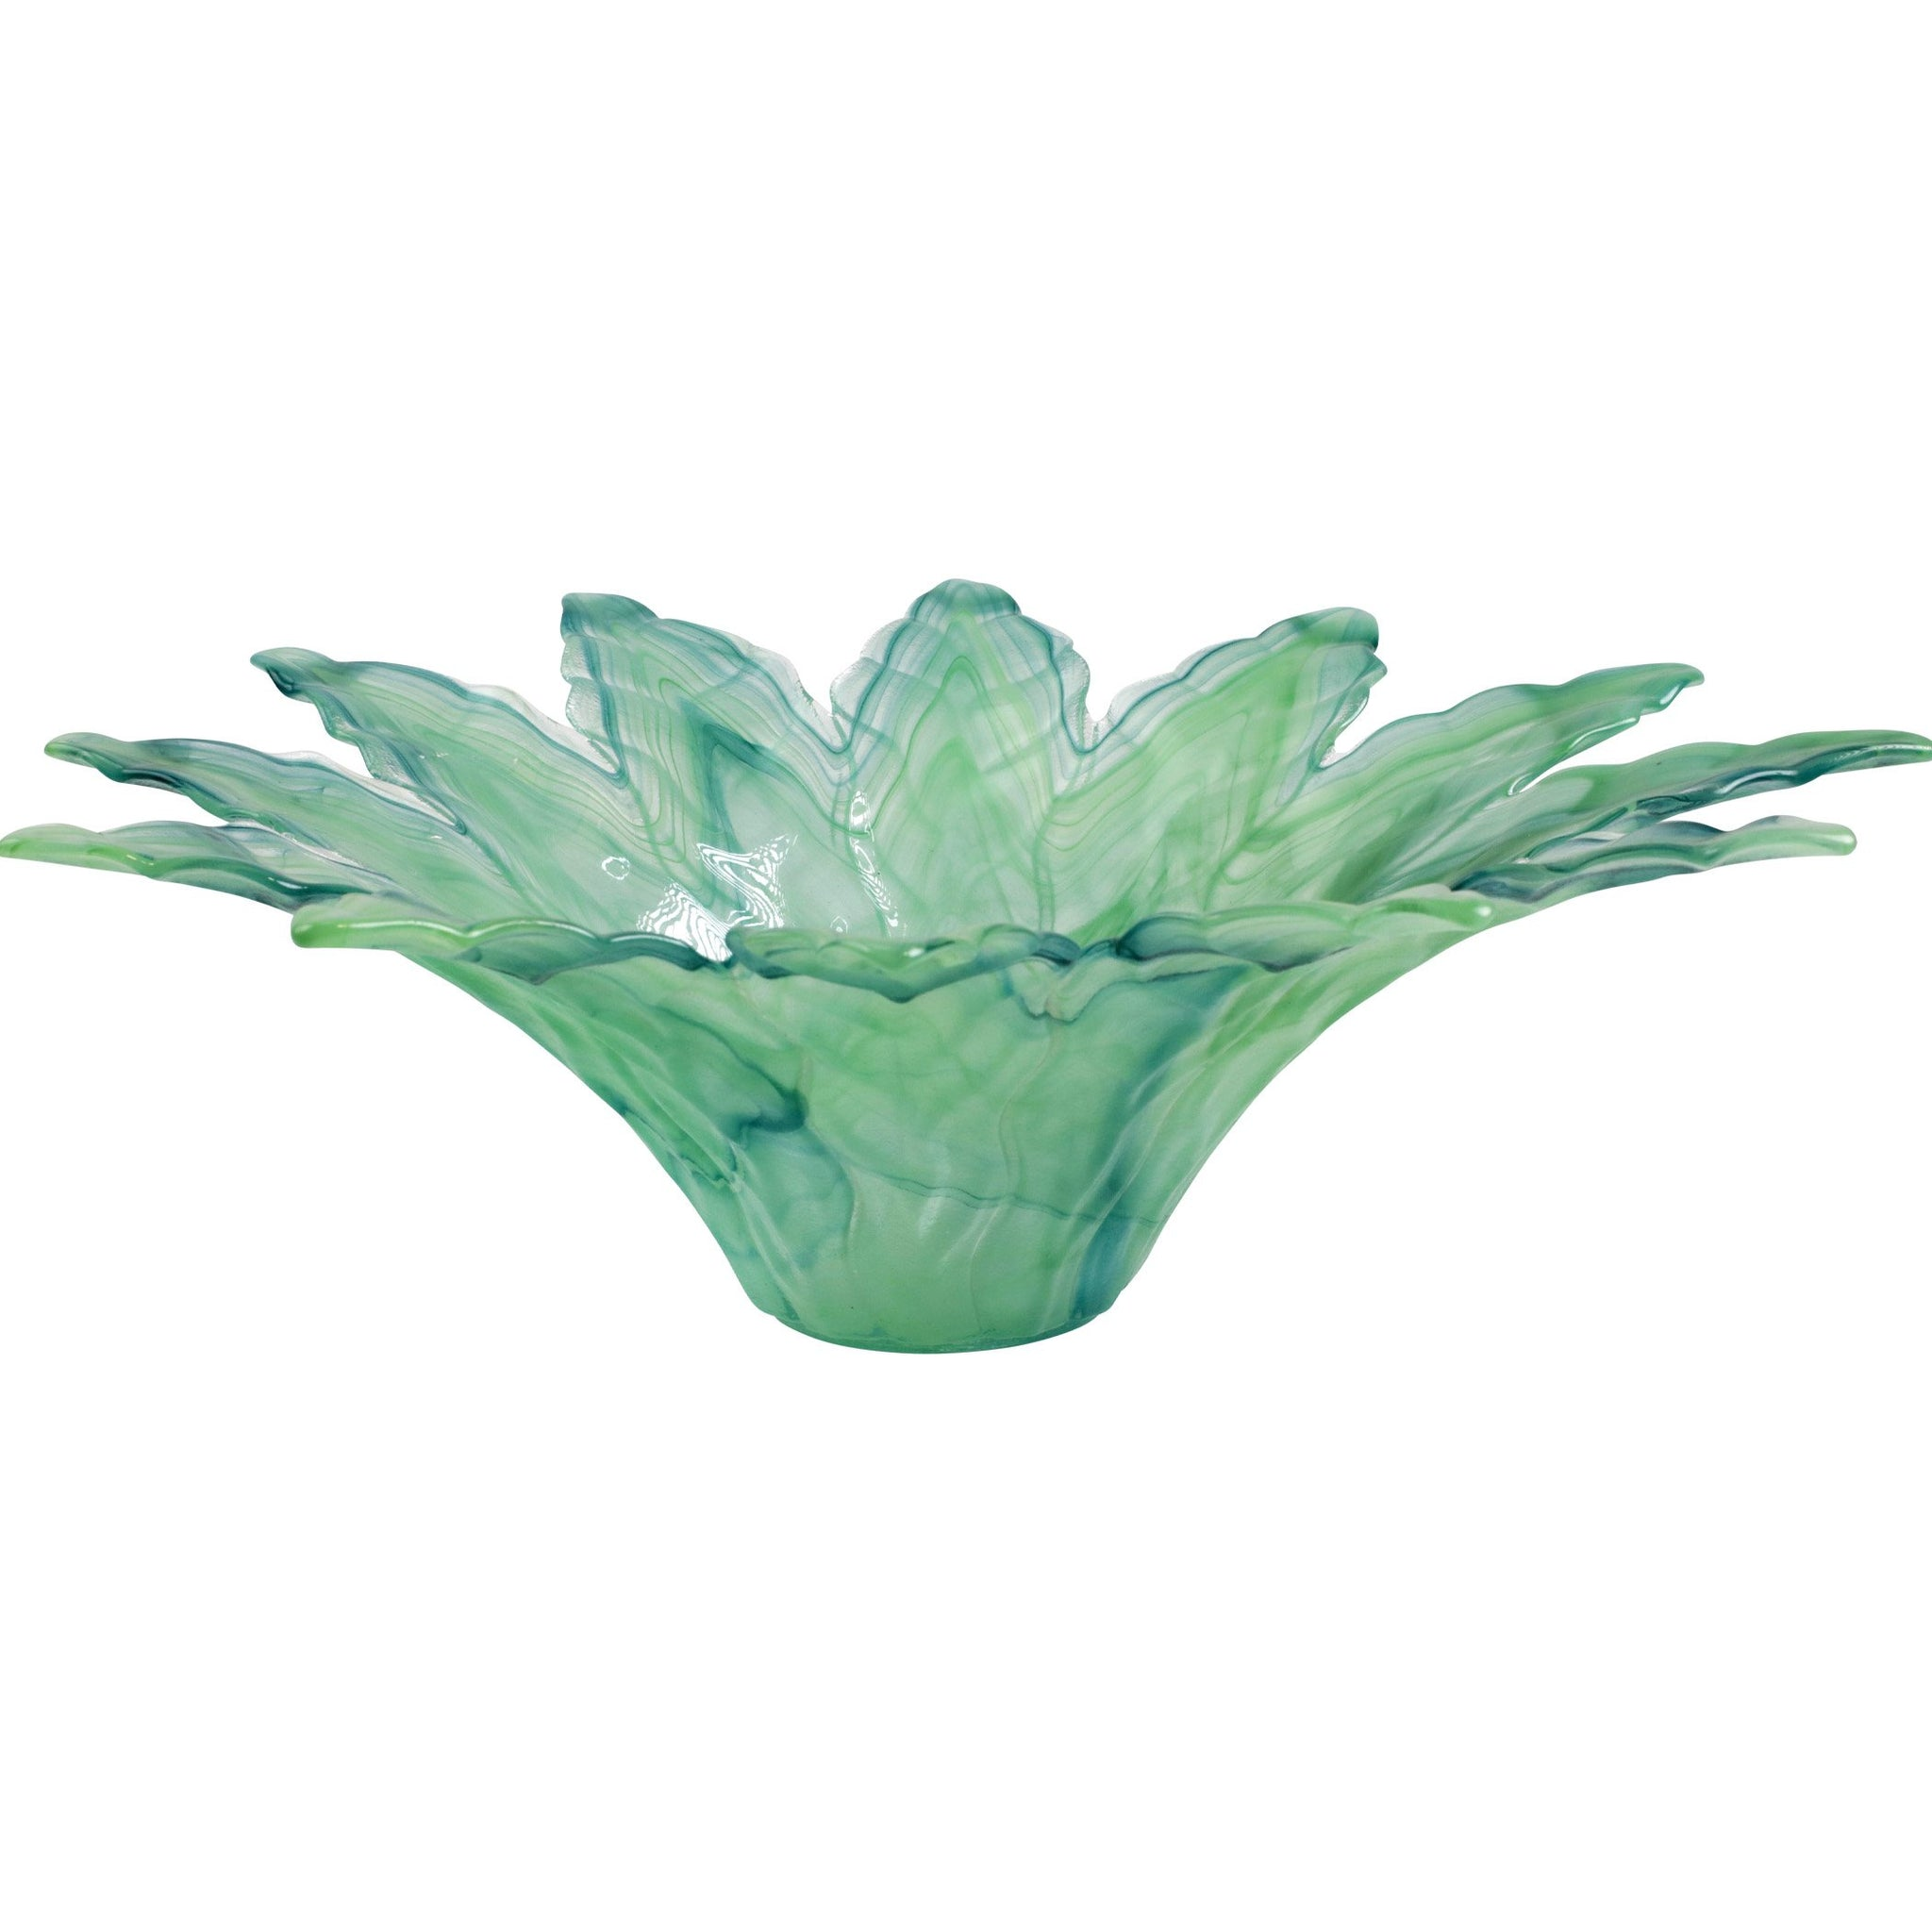 Onda Glass Leaf Large Centerpiece